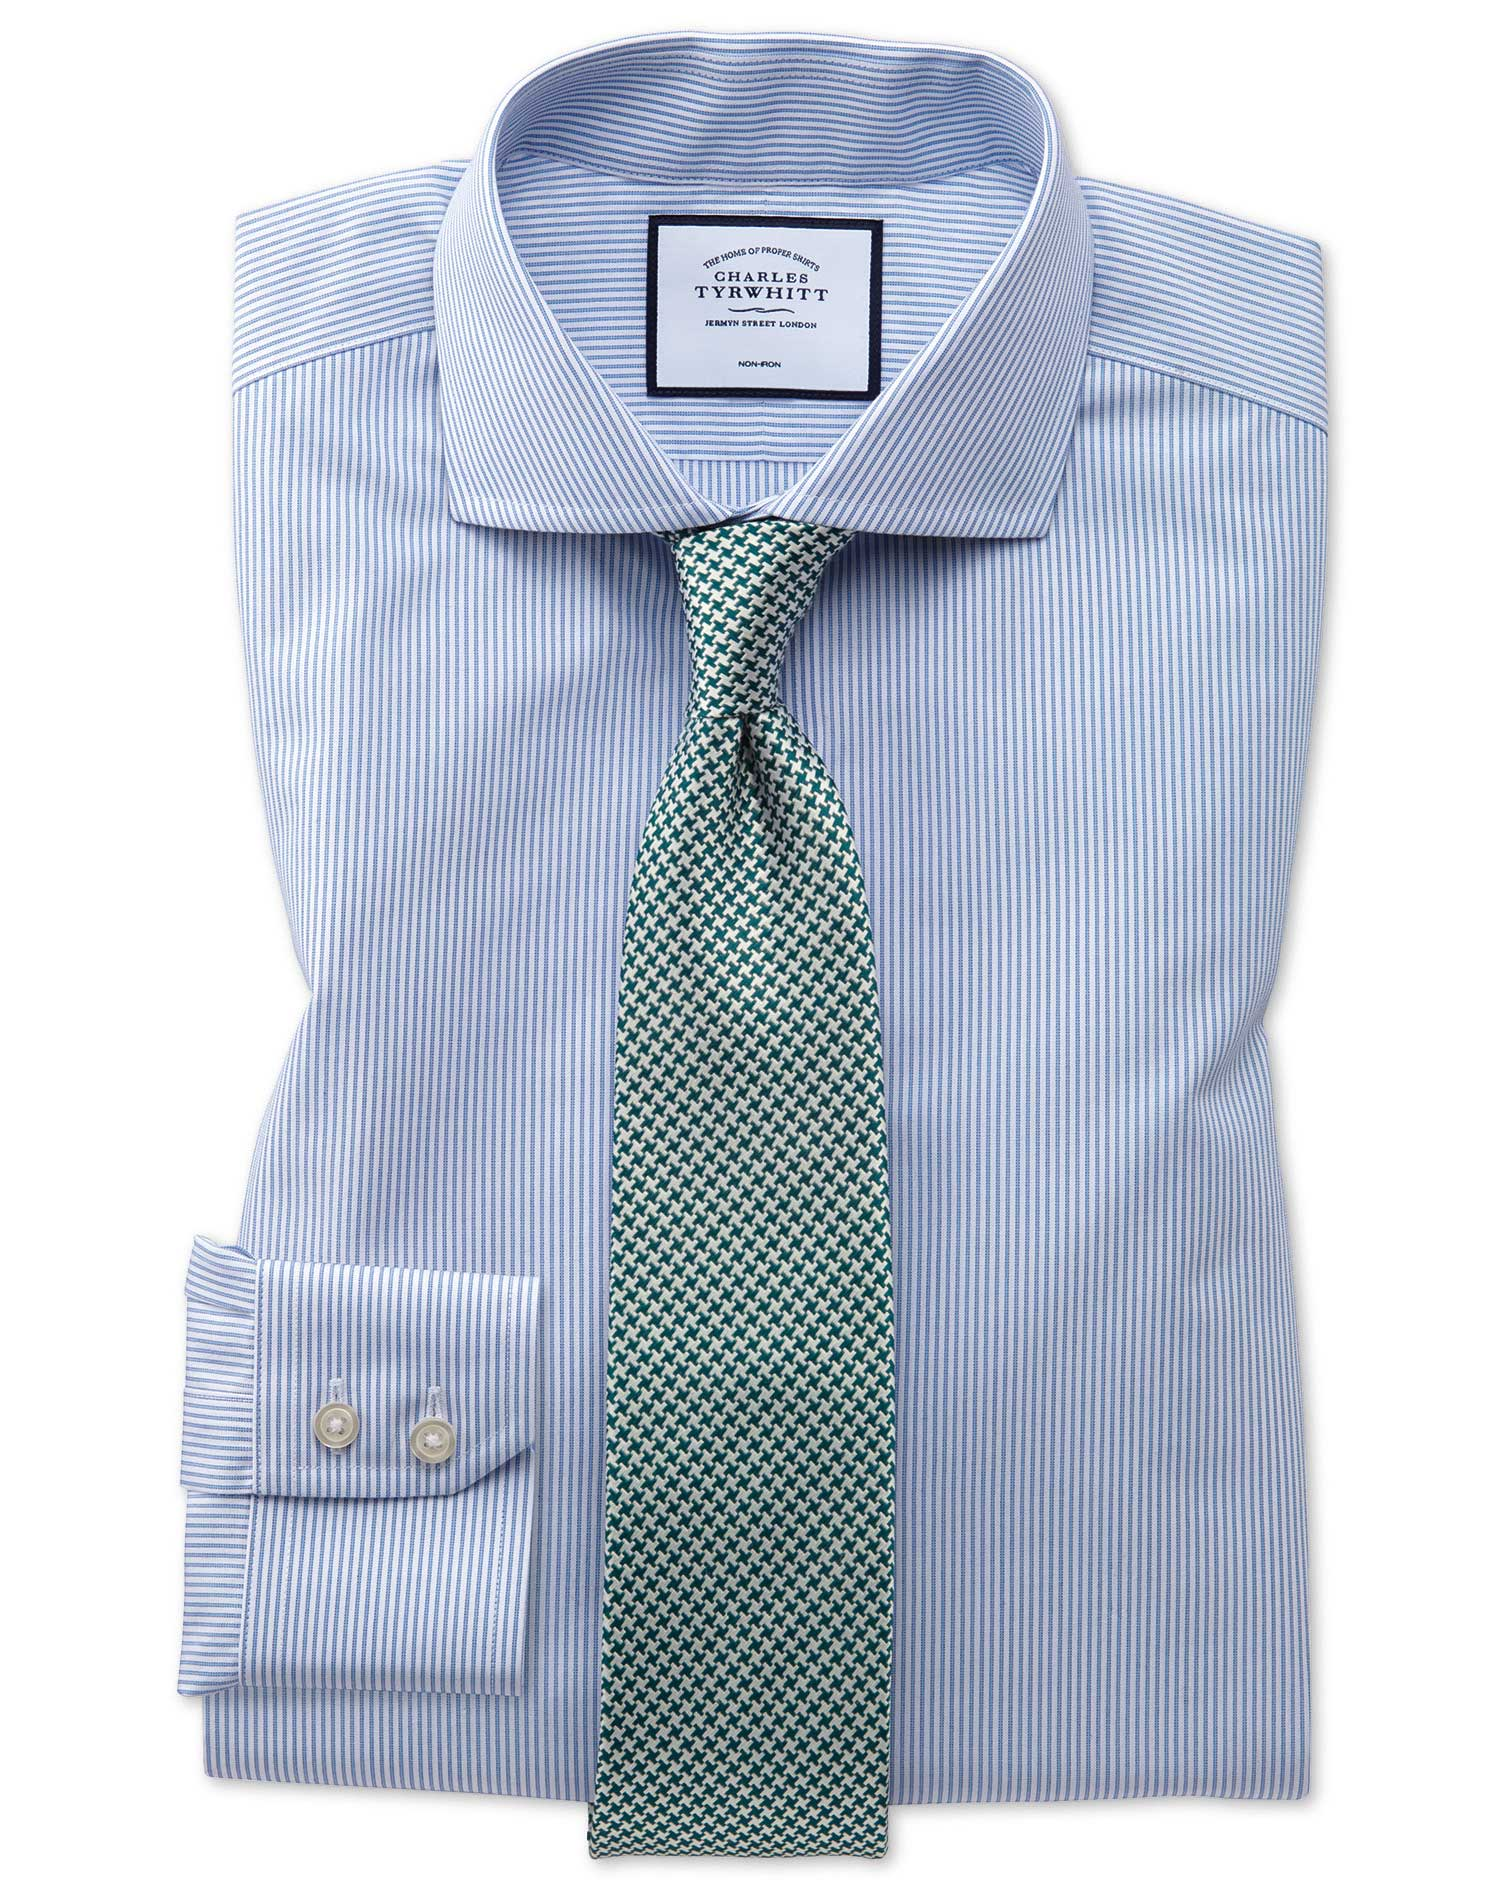 Slim Fit Non-Iron Natural Cool Blue Stripe Cotton Formal Shirt Single Cuff Size 16/34 by Charles Tyrwhitt from Charles Tyrwhitt